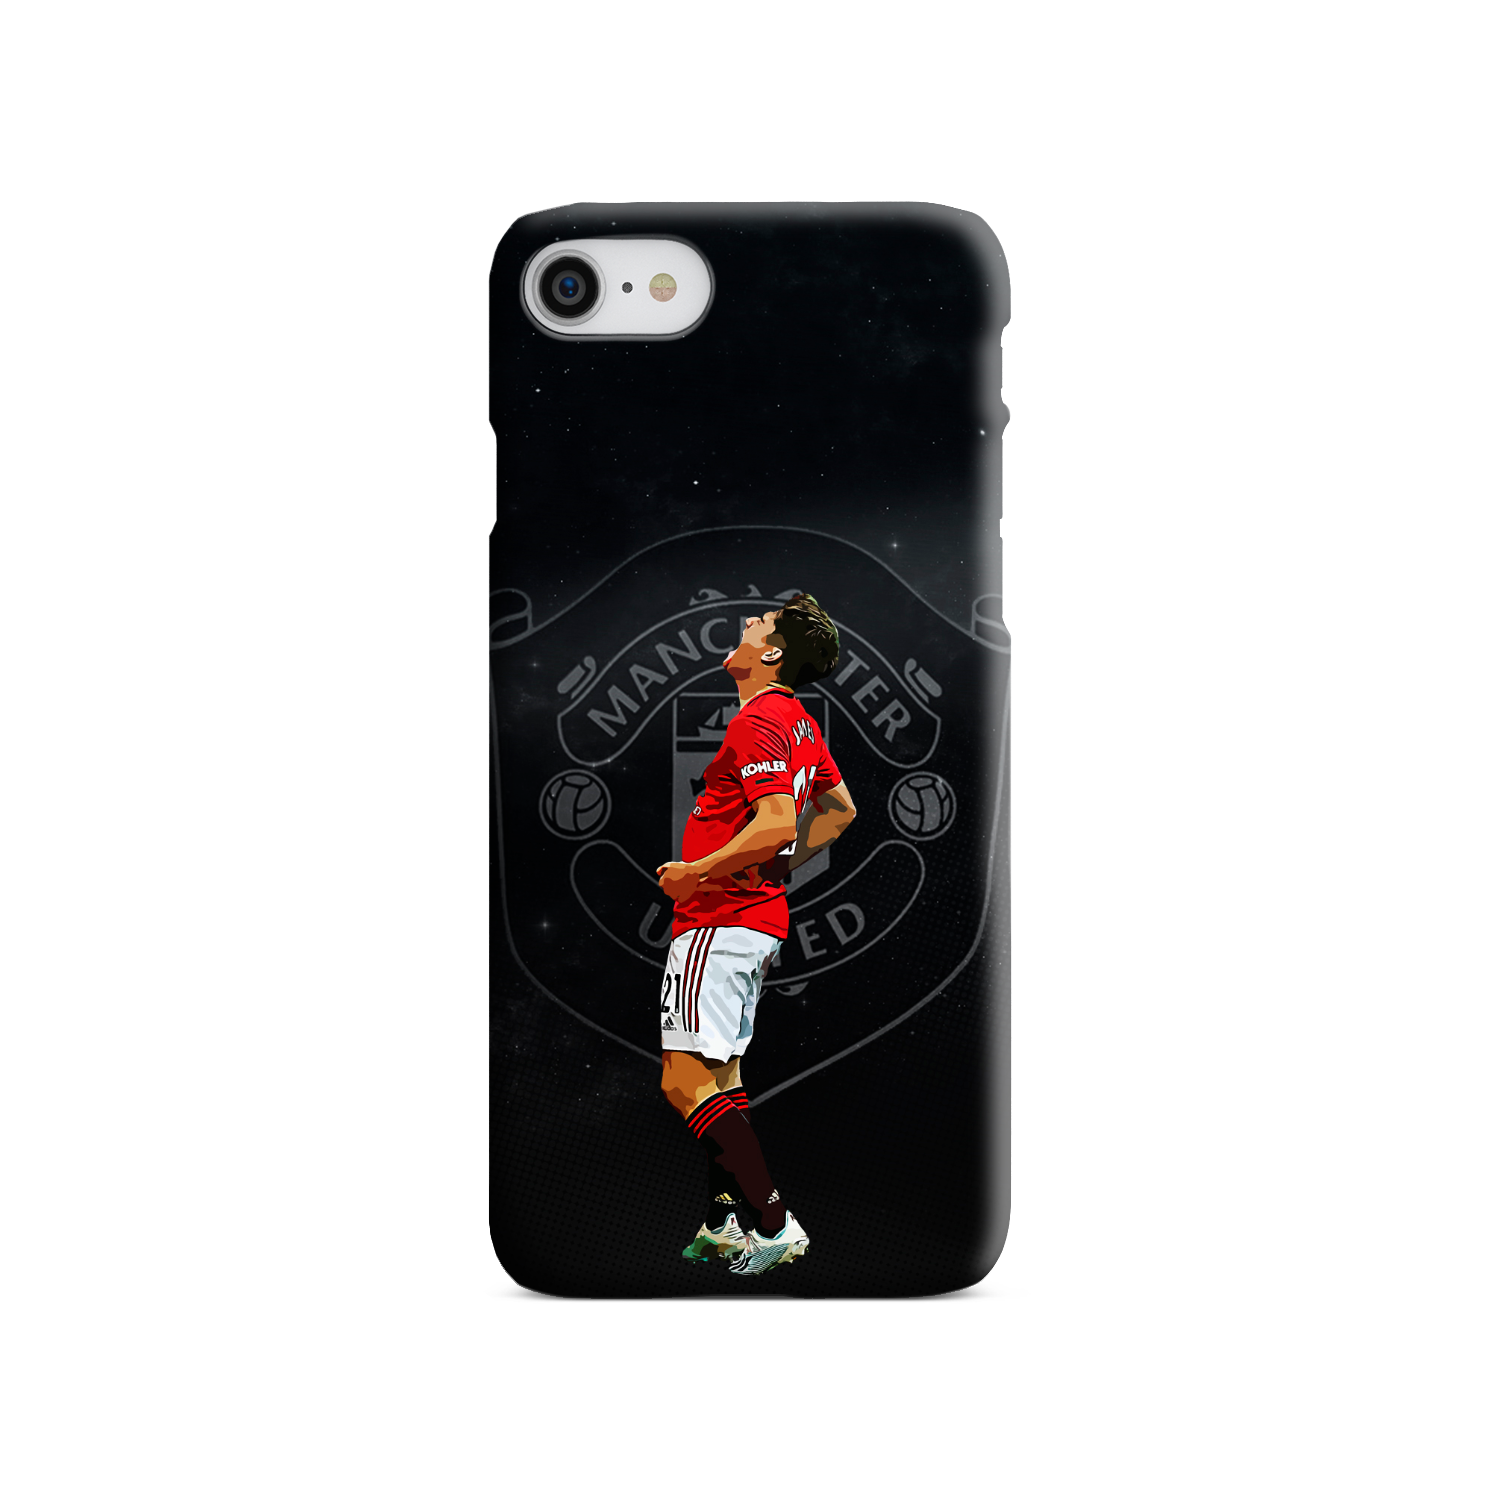 iPhone Case - cover